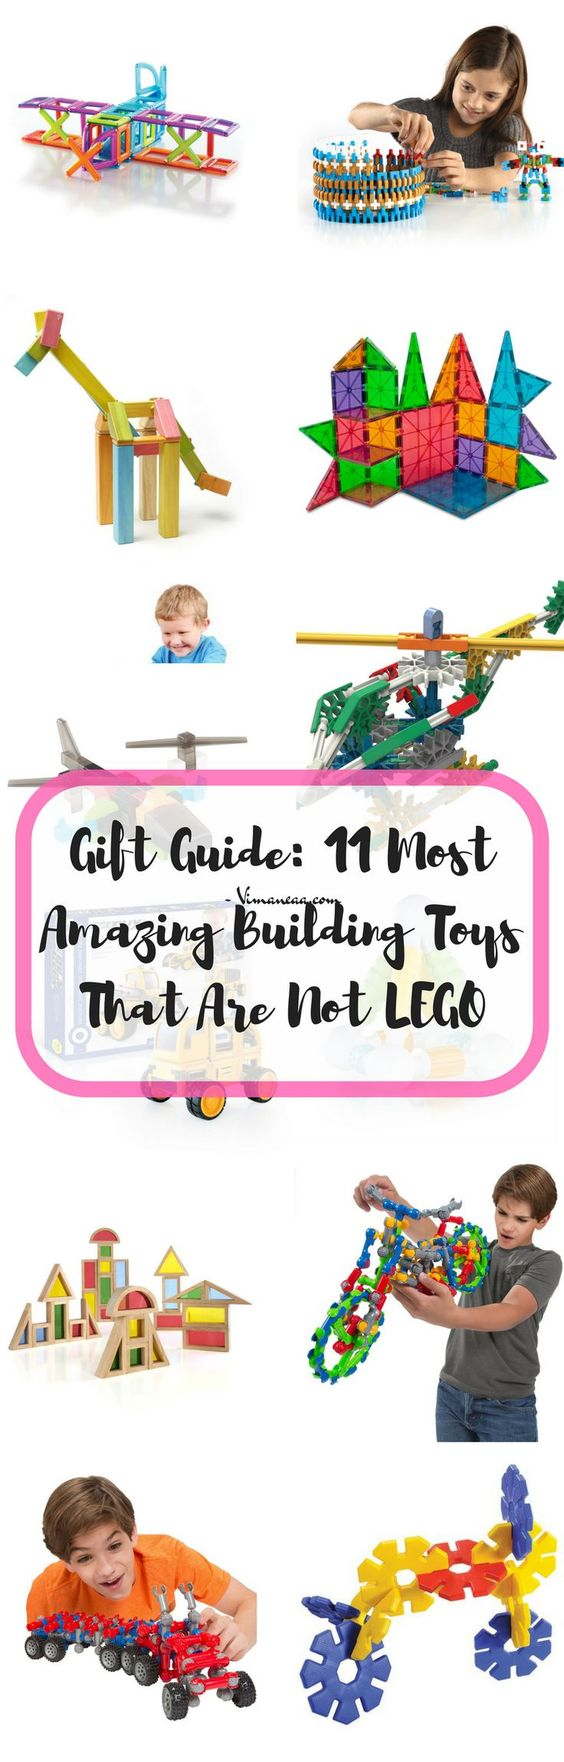 Gift Guide: 11 Most Amazing Building Toys That Are Not LEGO; Building blocks, preschool, gift ideas for toddlers, gift ideas for kids, gift ideas for preschoolers, Magnetic building blocks, building toys, stacking toys, STEM TOYS, STEAM toys, Sensory Play